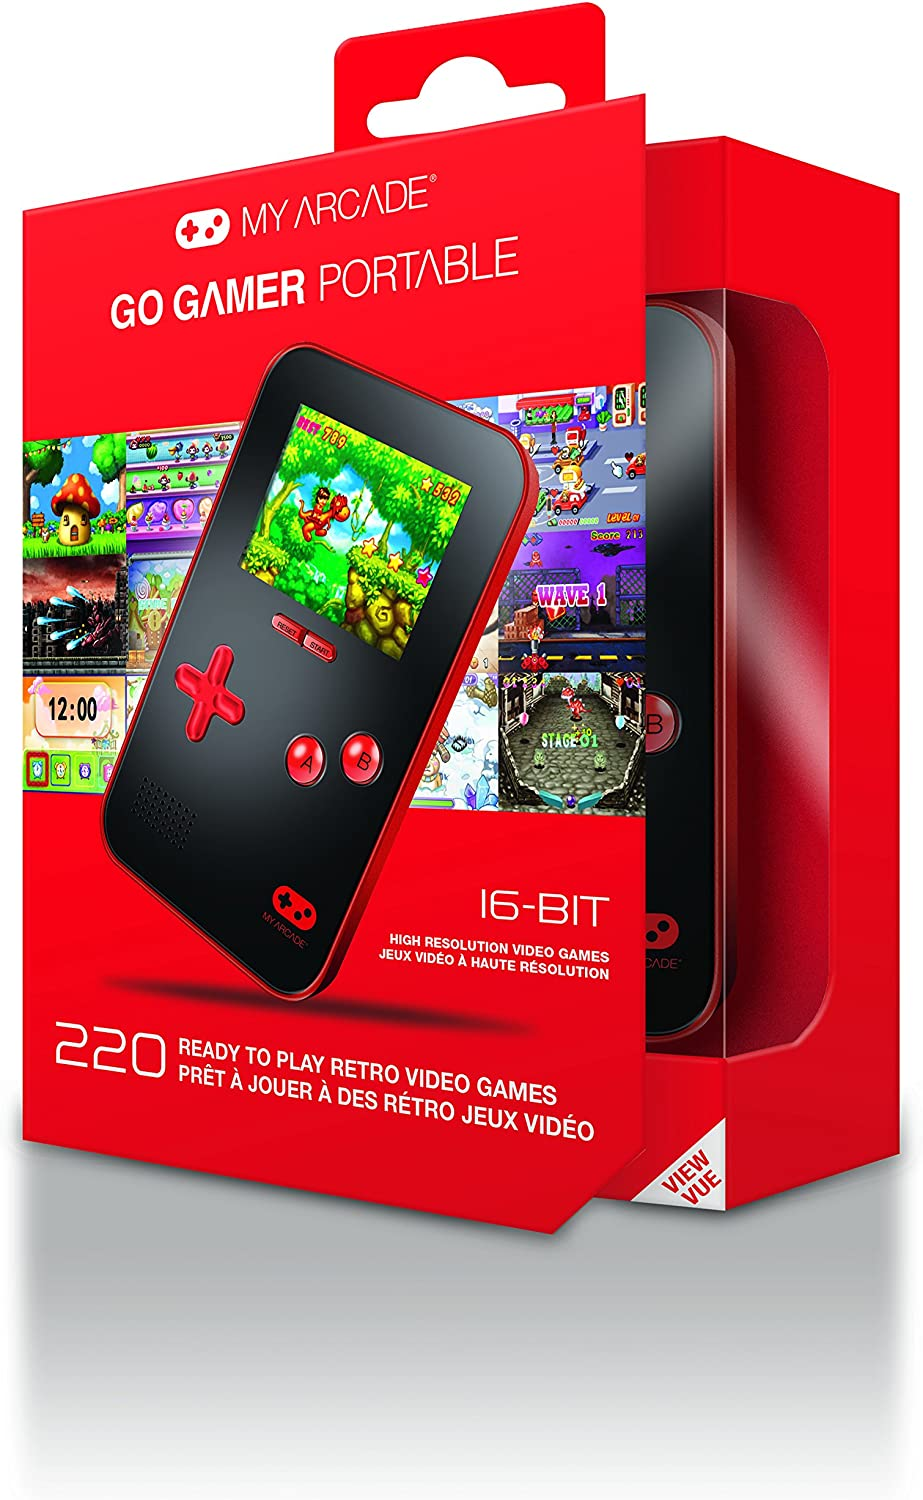 Arcade GoGamer Portable Gaming Screen electronic Image 2